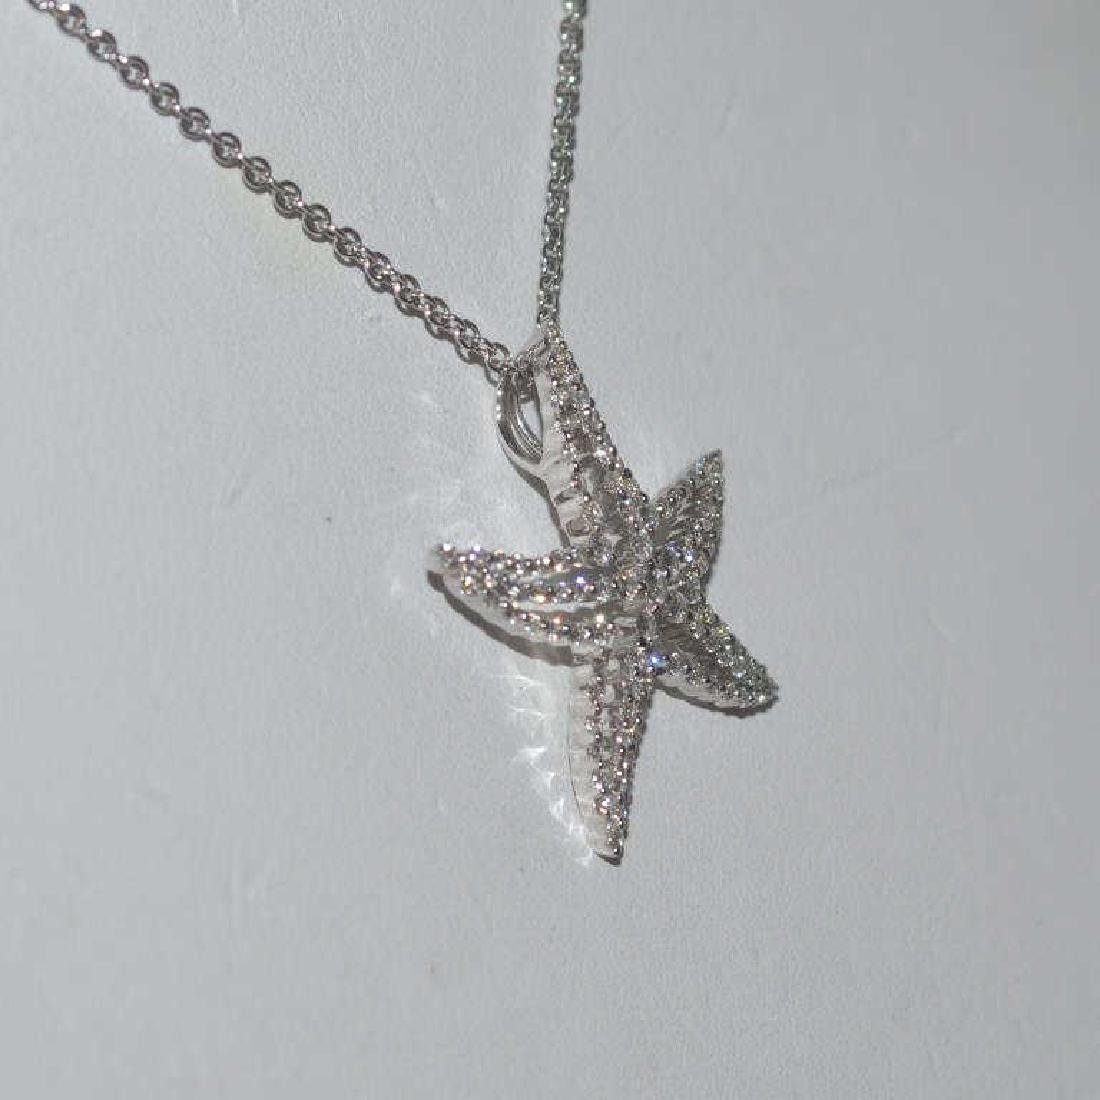 18kt white gold diamond starfish pendant - 3